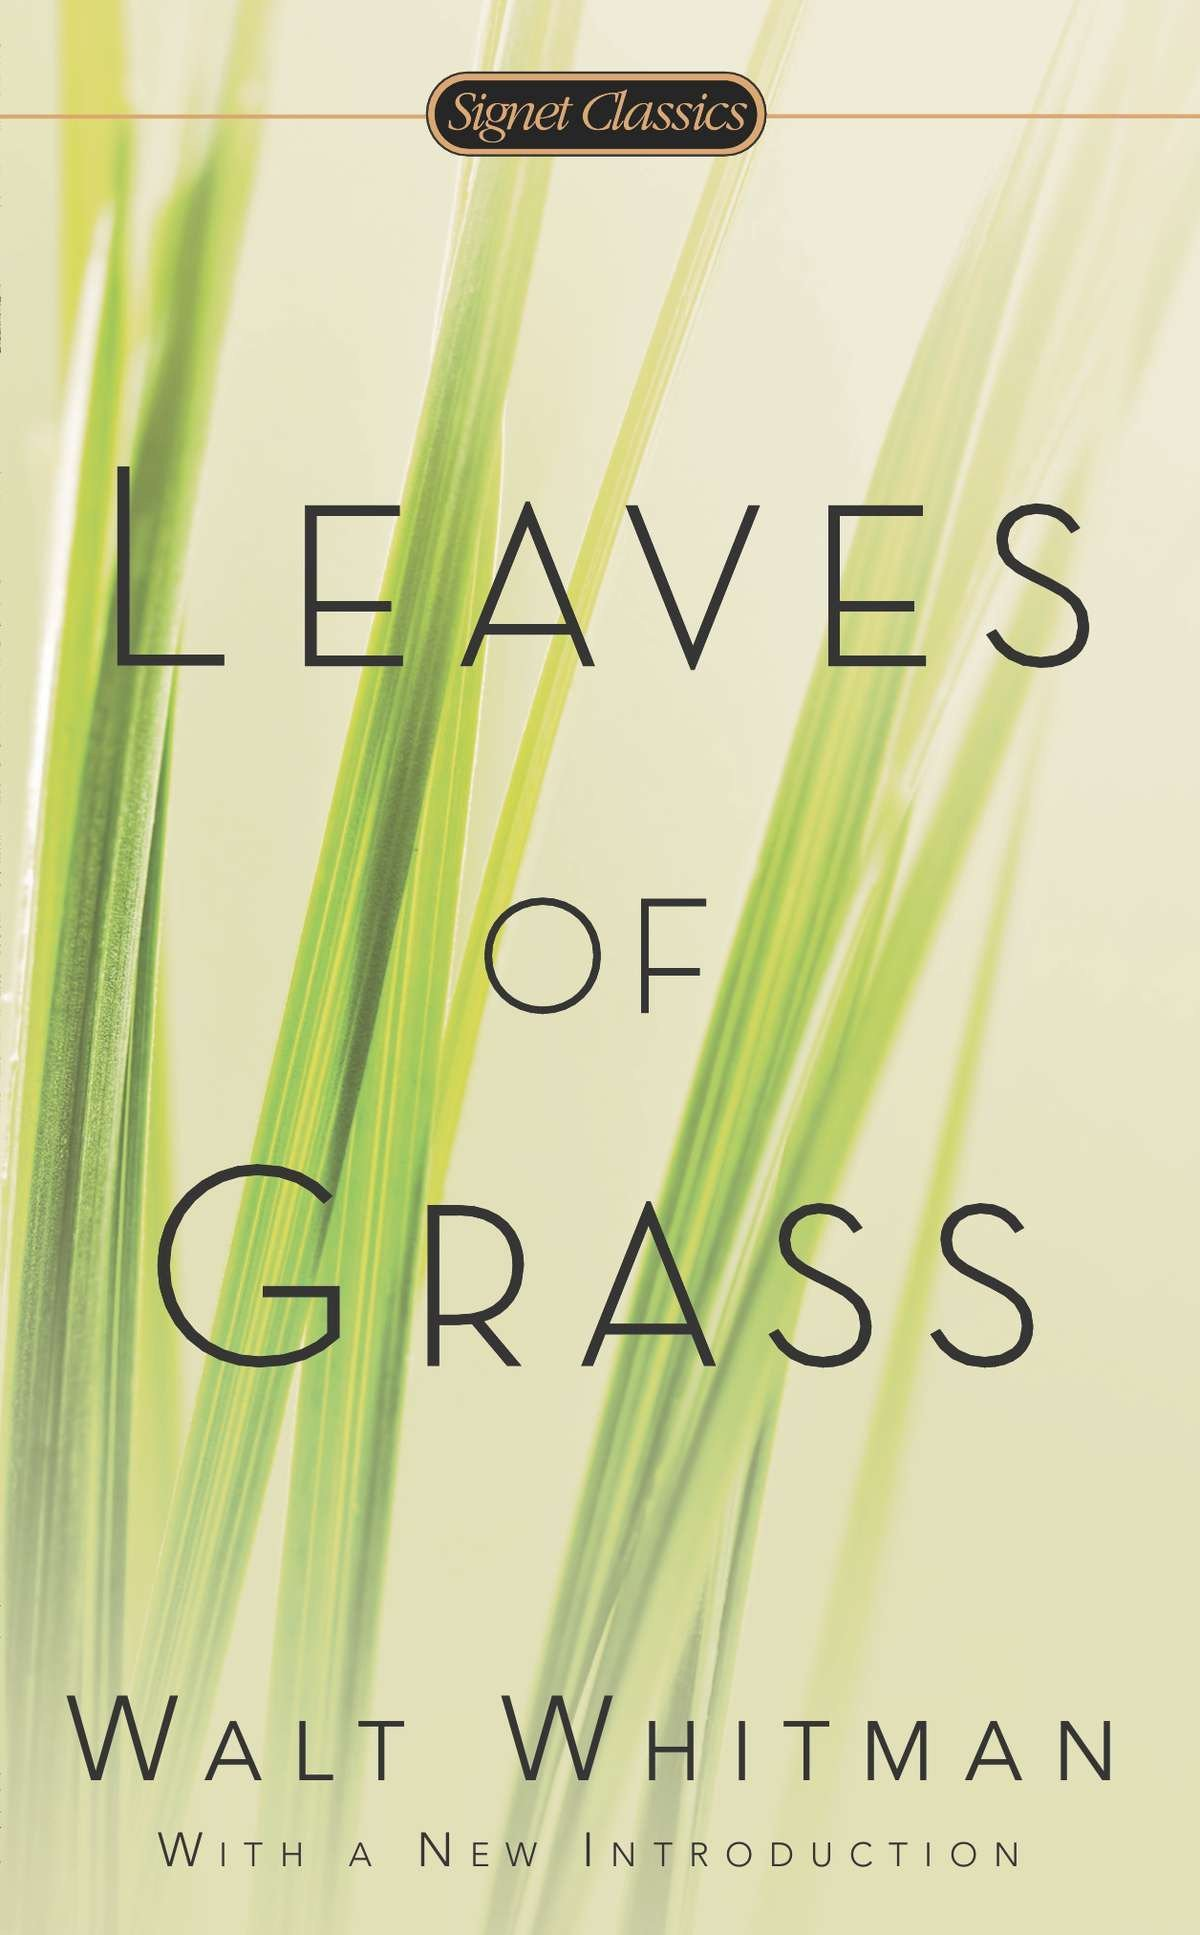 Amazon fr - Leaves of Grass - Walt Whitman, Billy Collins, Peter